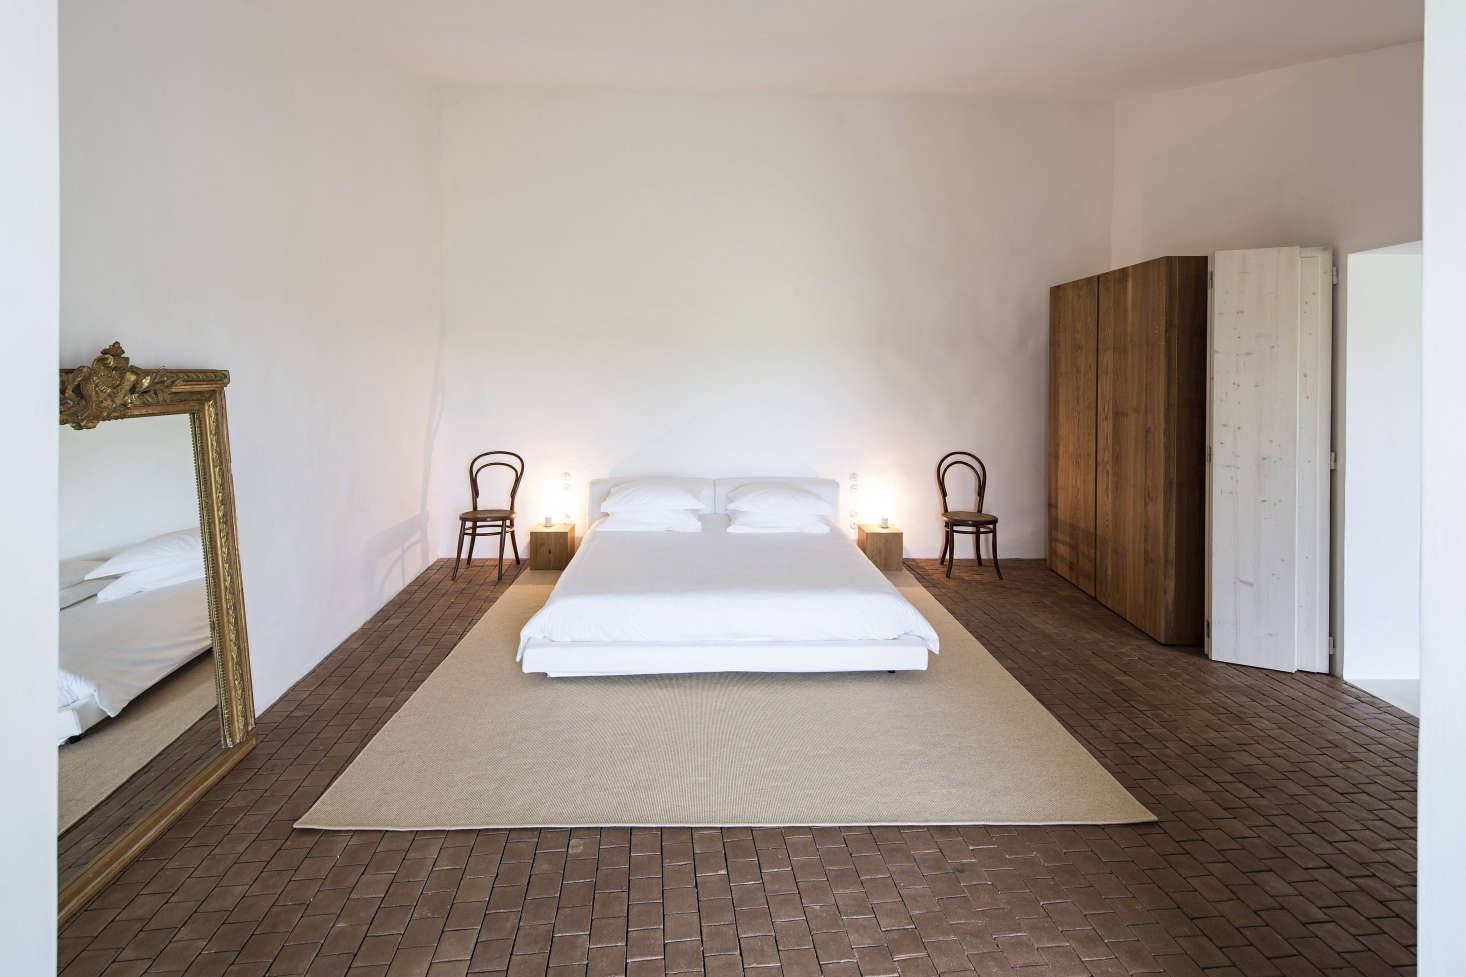 Terracotta tile in situ at Casa No Tempo: A Minimalist Retreat in the Portuguese Countryside.